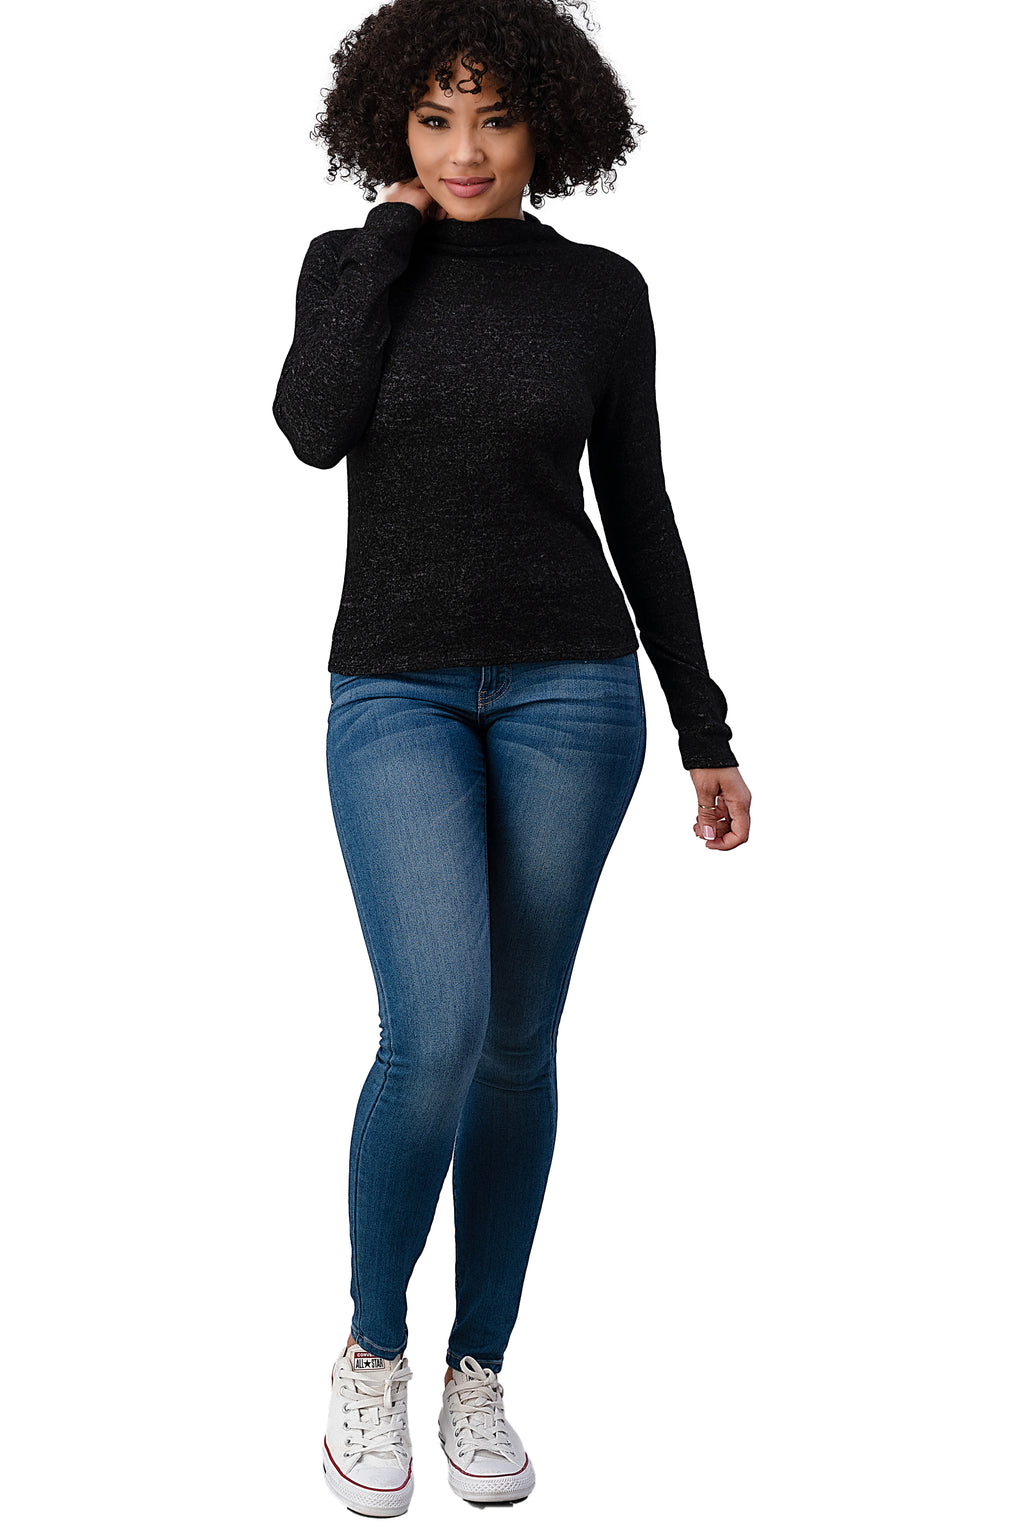 BRUSHED KNIT SOLID MOCK NECK LONG SLEEVE TOP